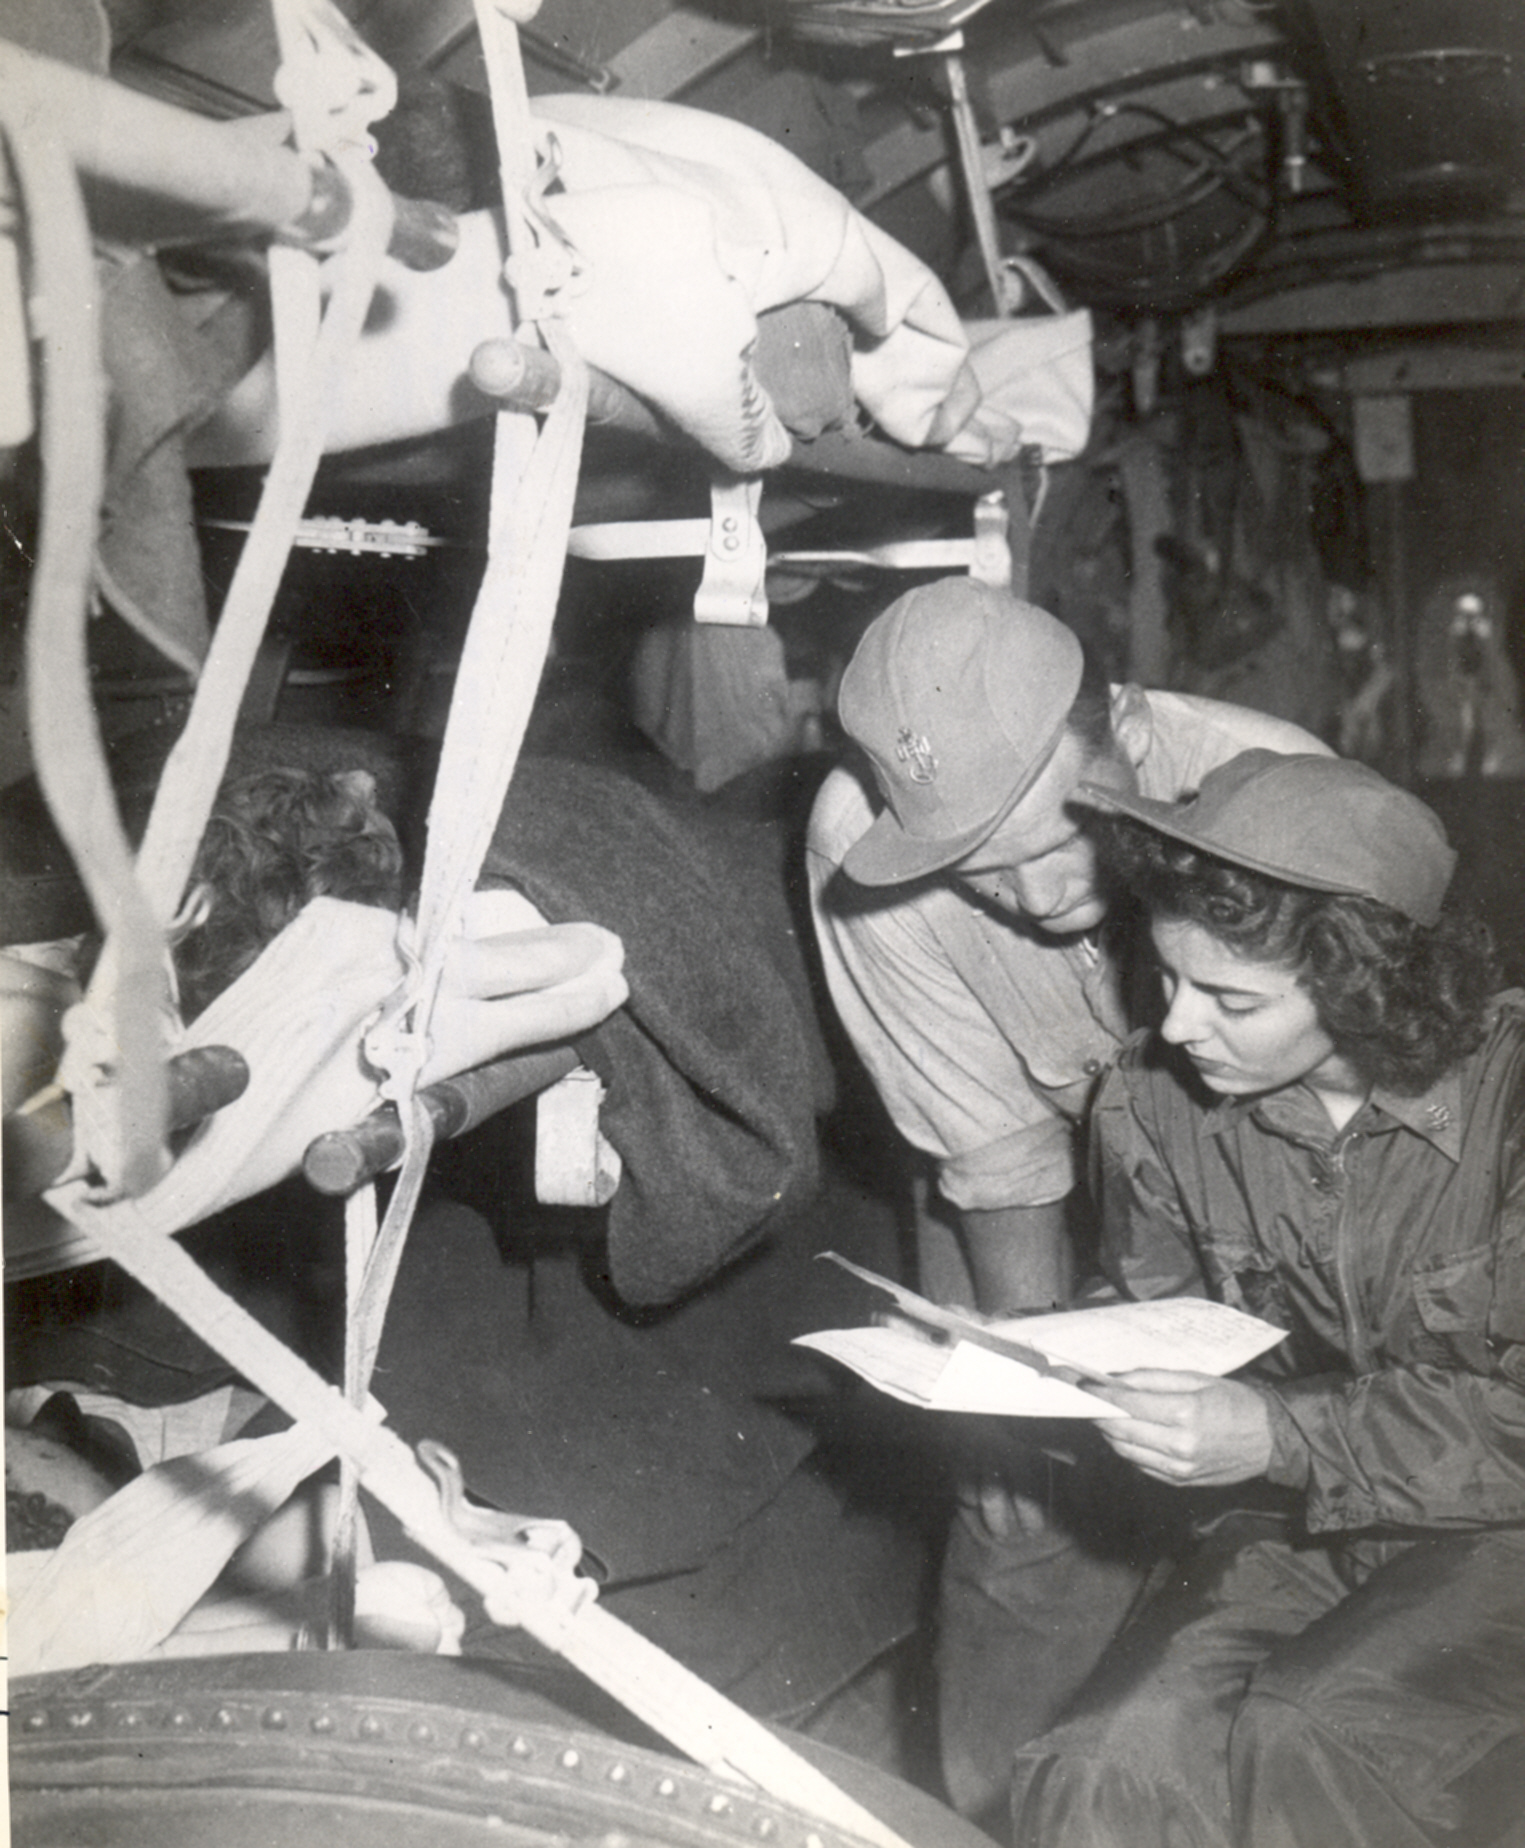 Flight Nurse Jane Kendeigh on Trip from Iwo Jima